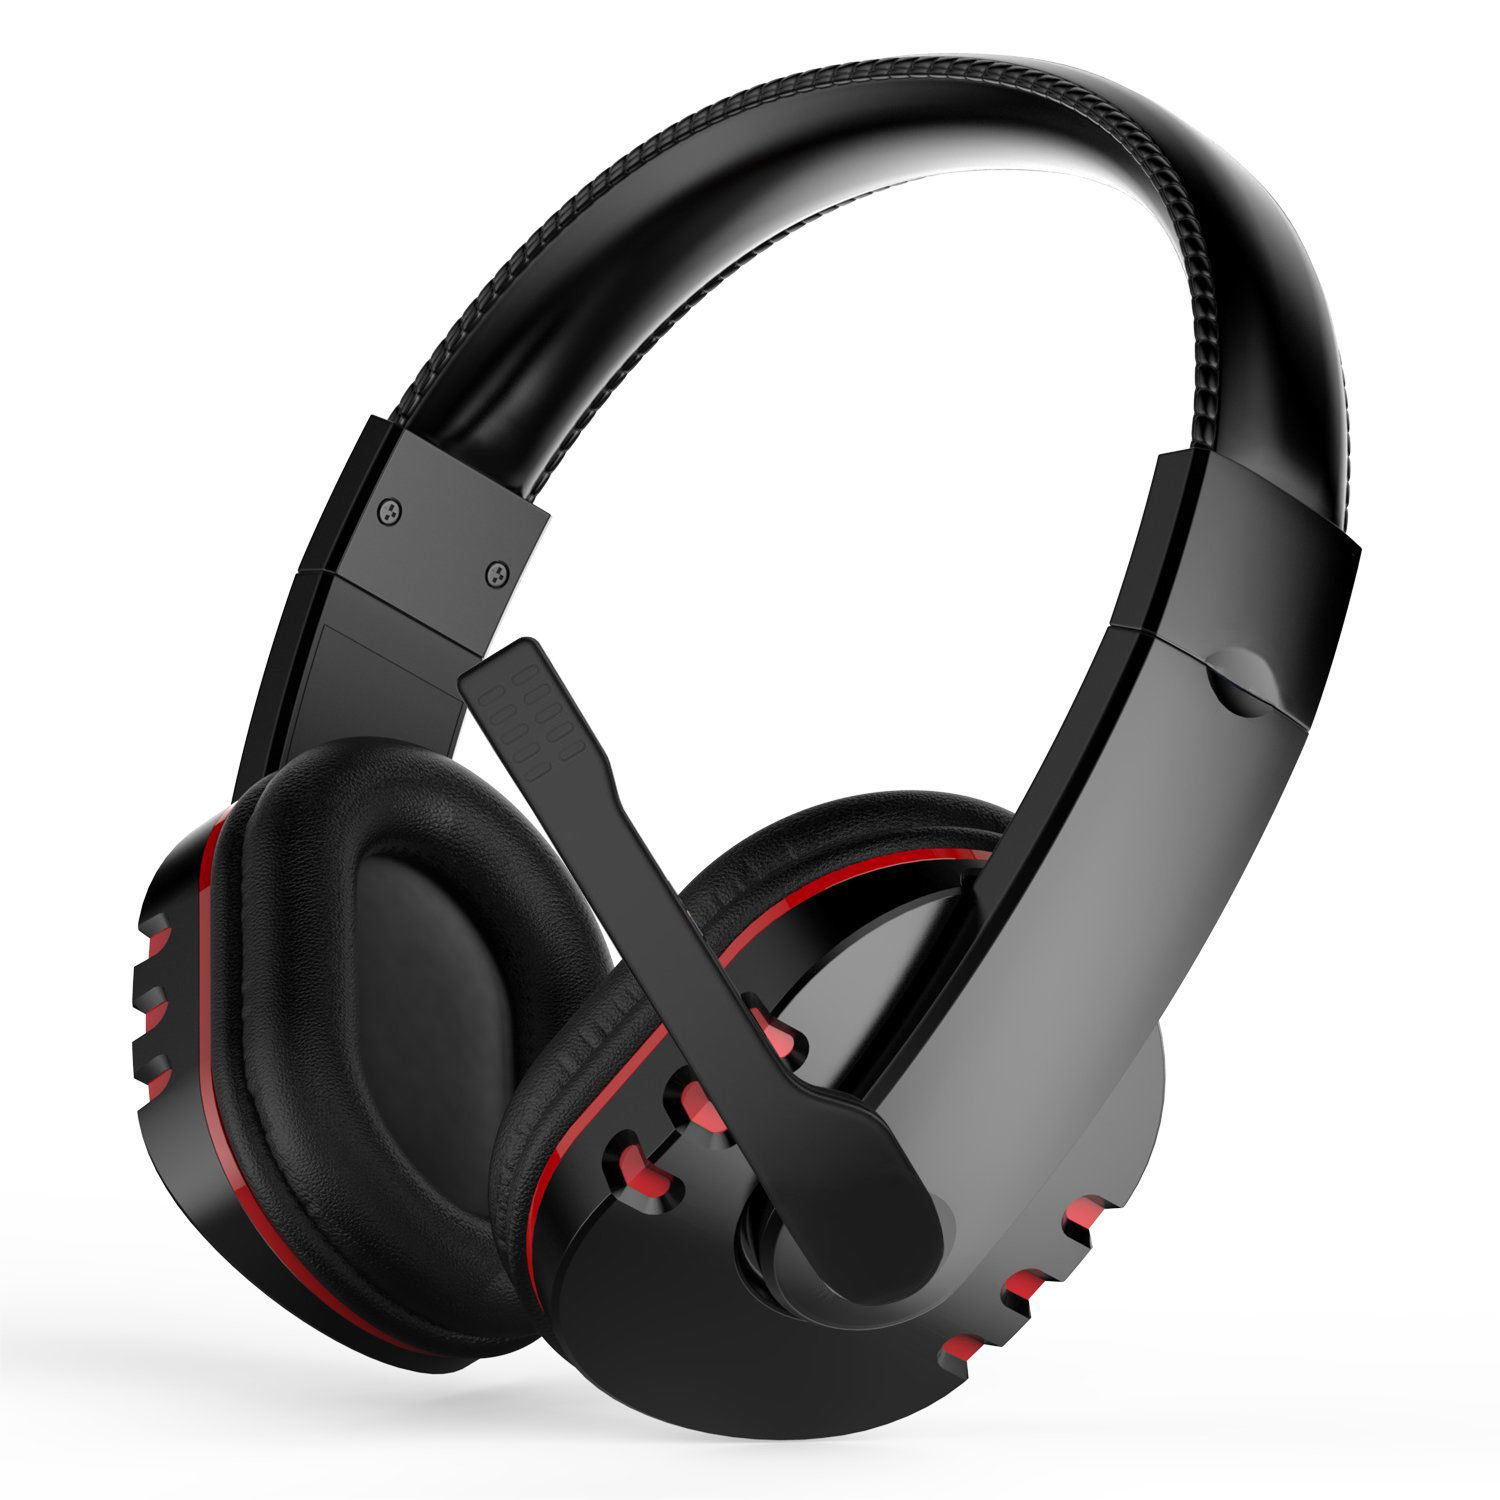 Stereo Gaming Headset for PS4, PC, Noise Cancelling Over Ear Headphones with Mic, Bass Surround, Soft Memory Earmuffs for Laptop Mac Nintendo Switch Games